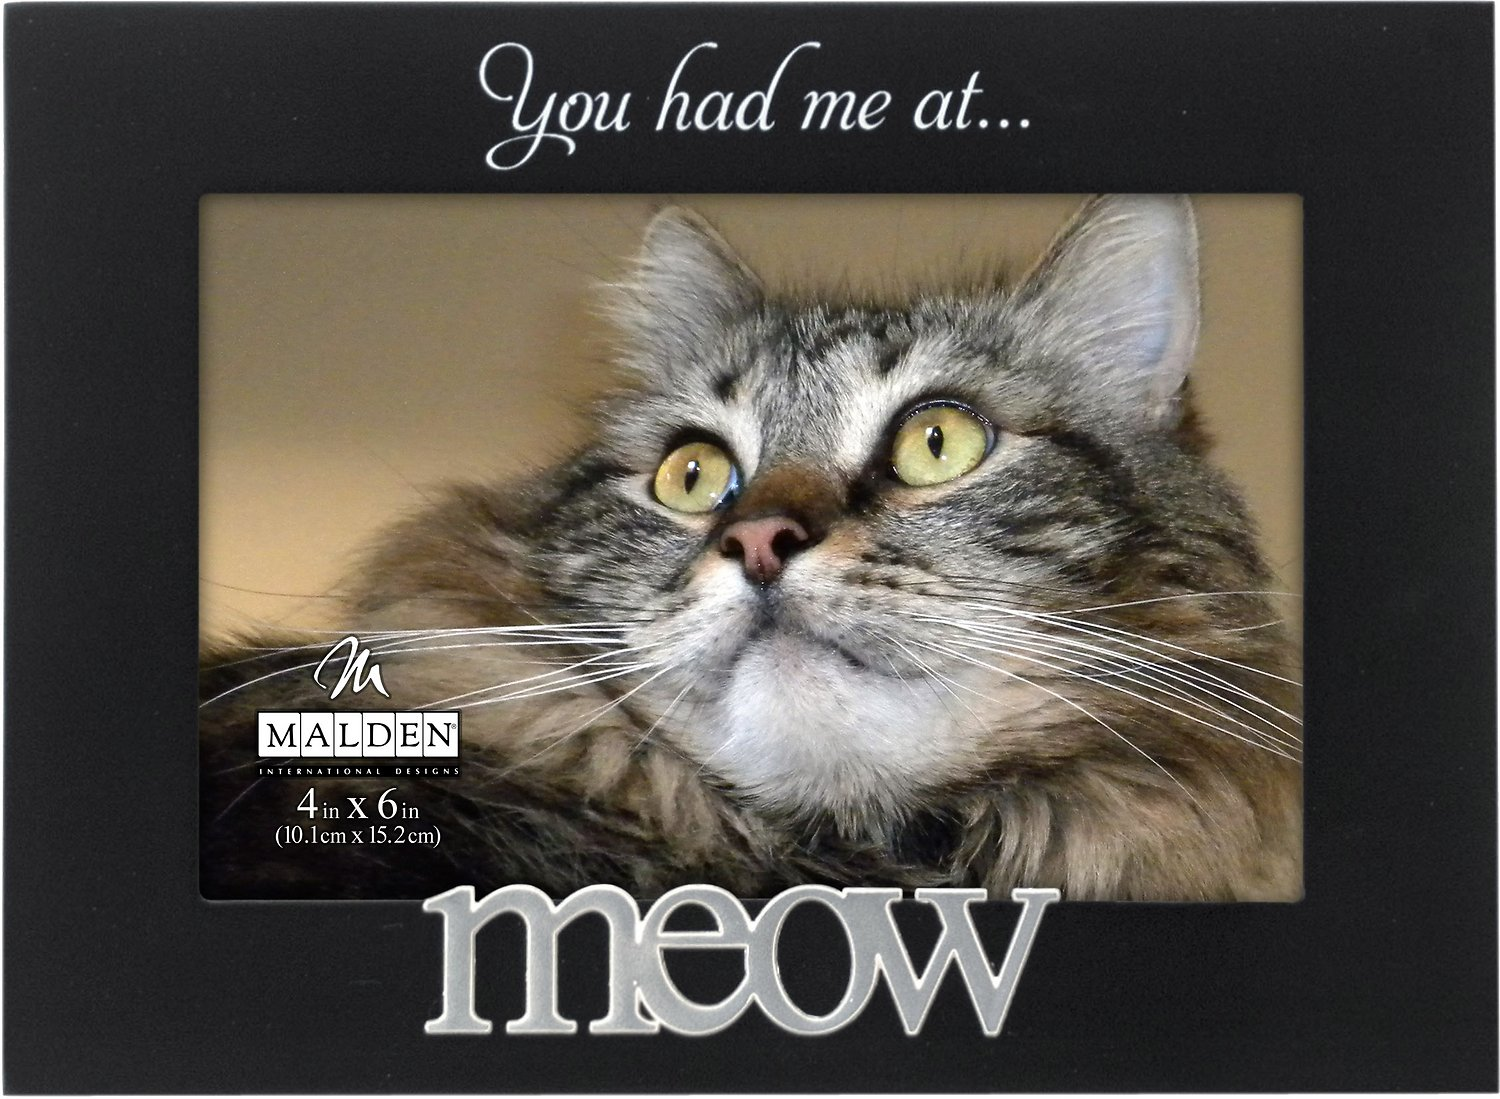 Malden International Designs You Had Me At Meow Cat Picture Frame